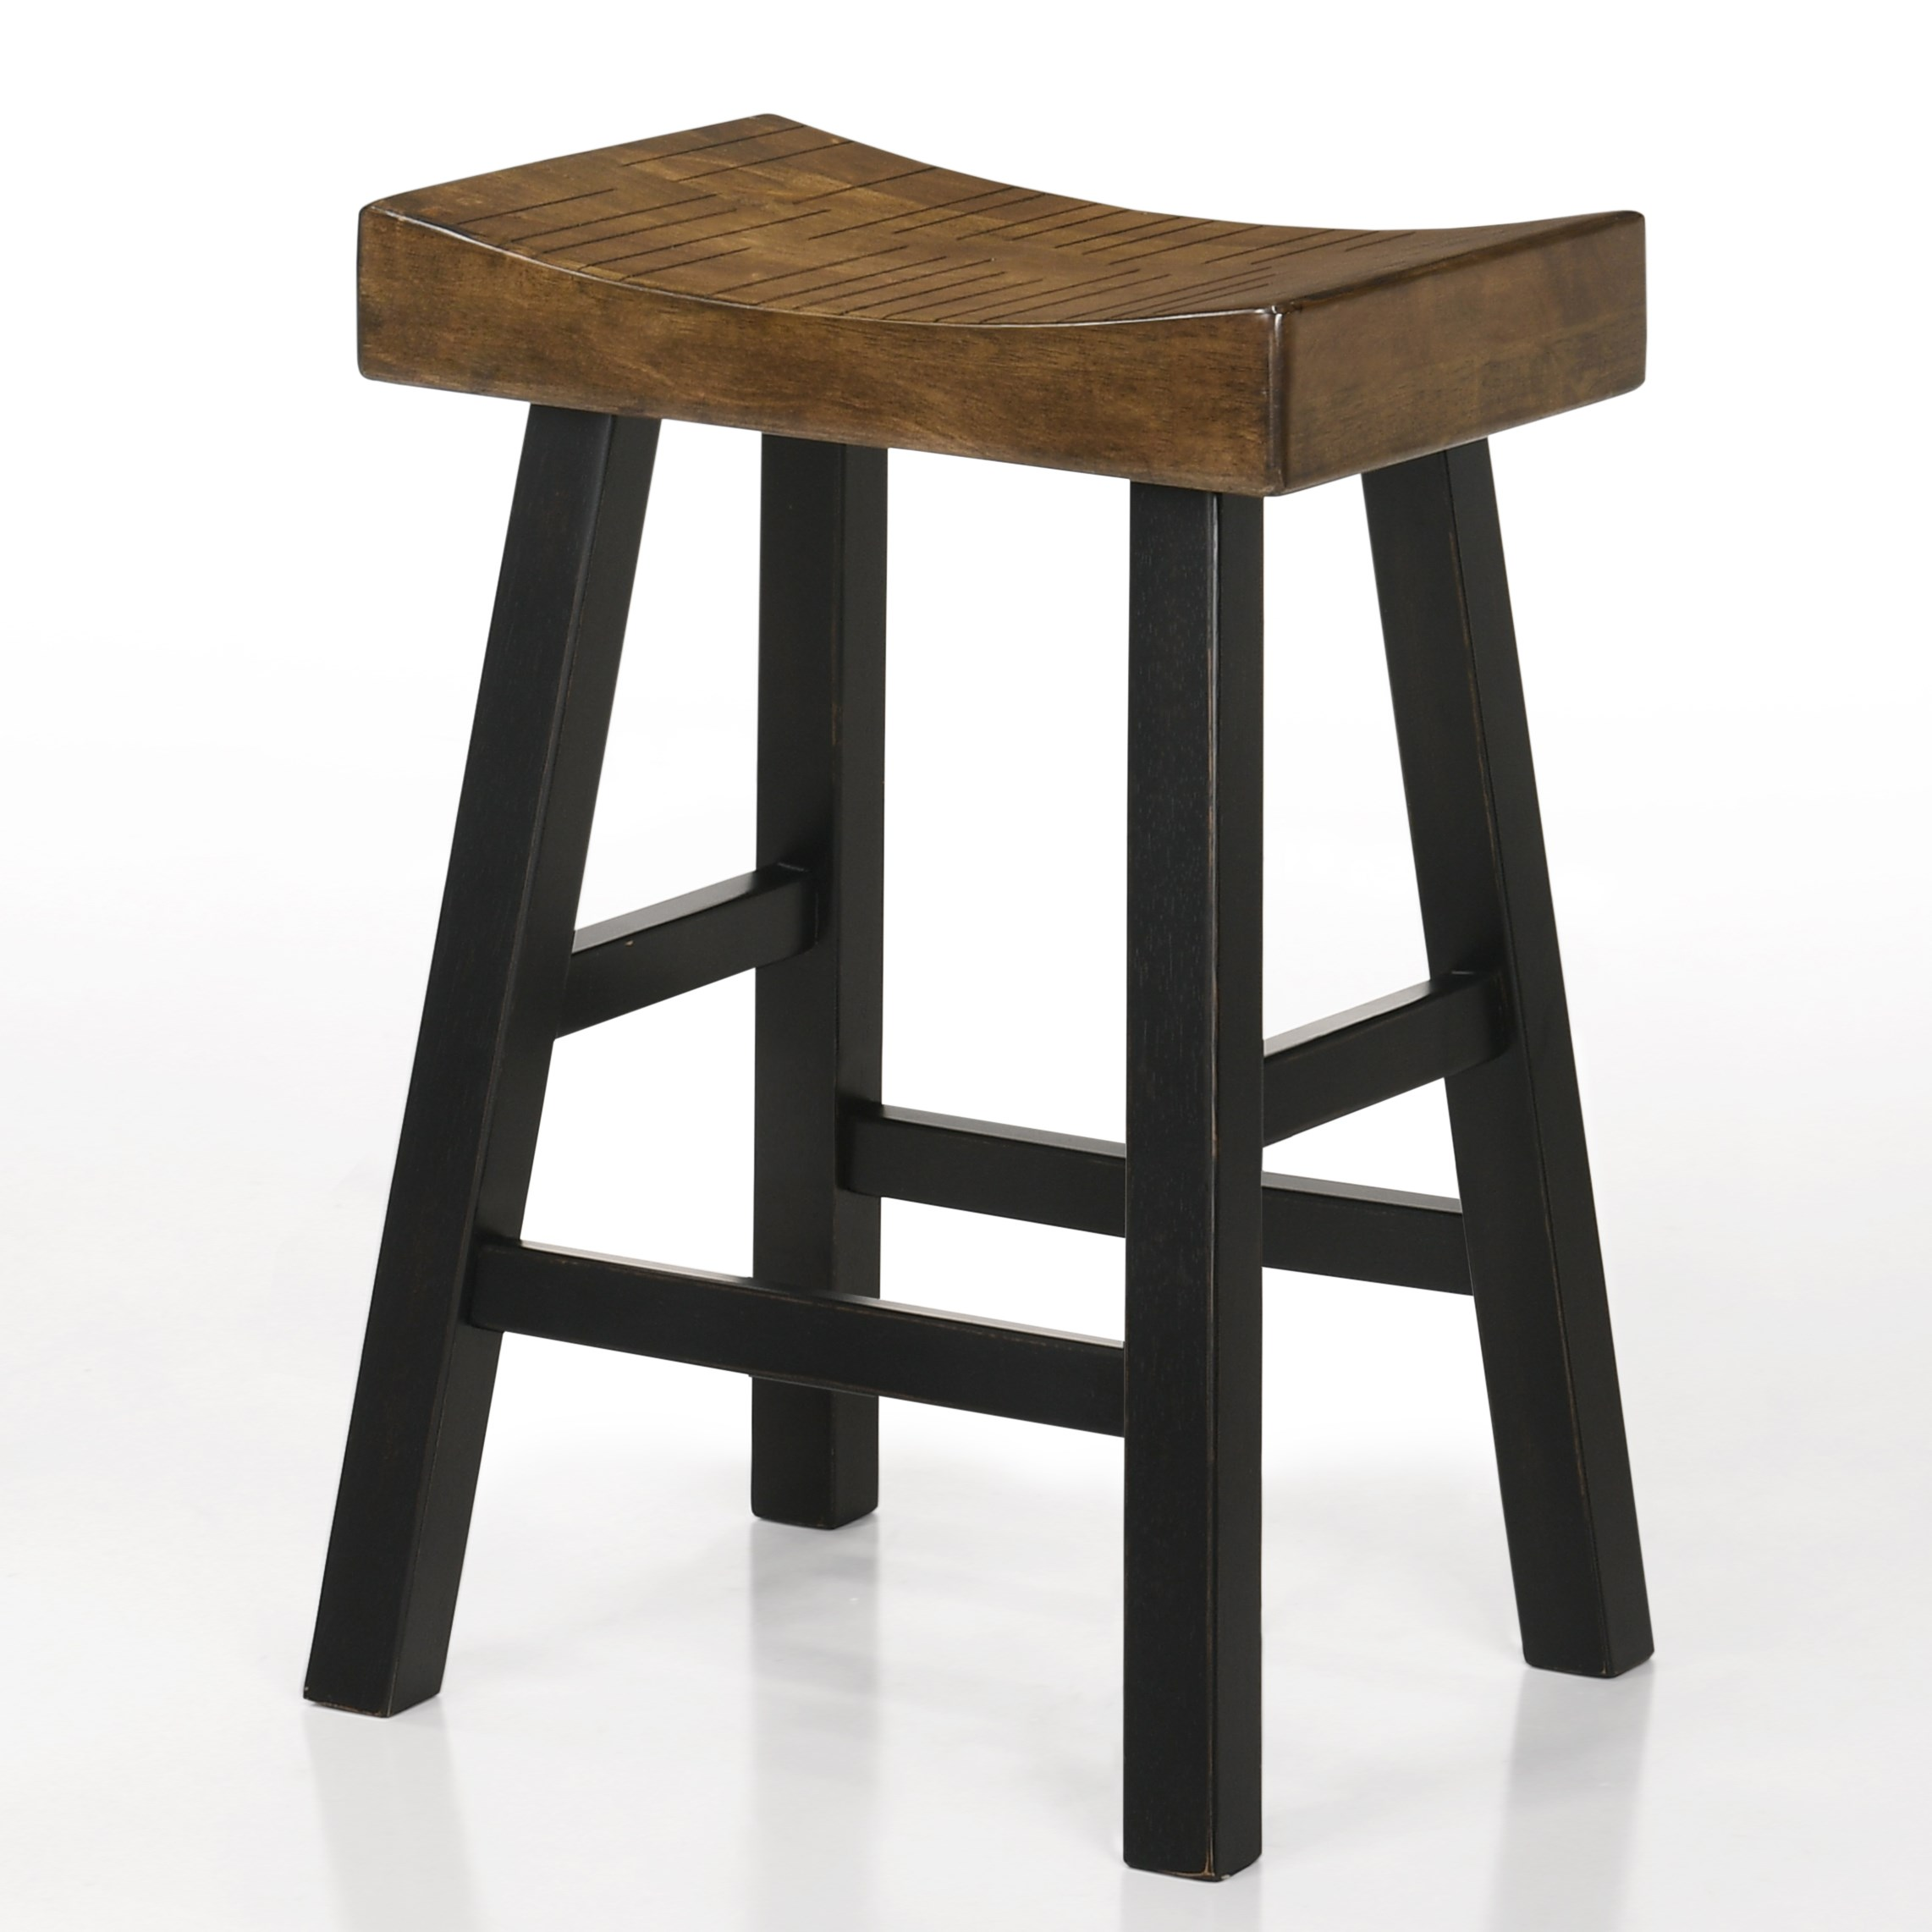 "Aruba 24"" Saddle Stool by Crown Mark at Northeast Factory Direct"